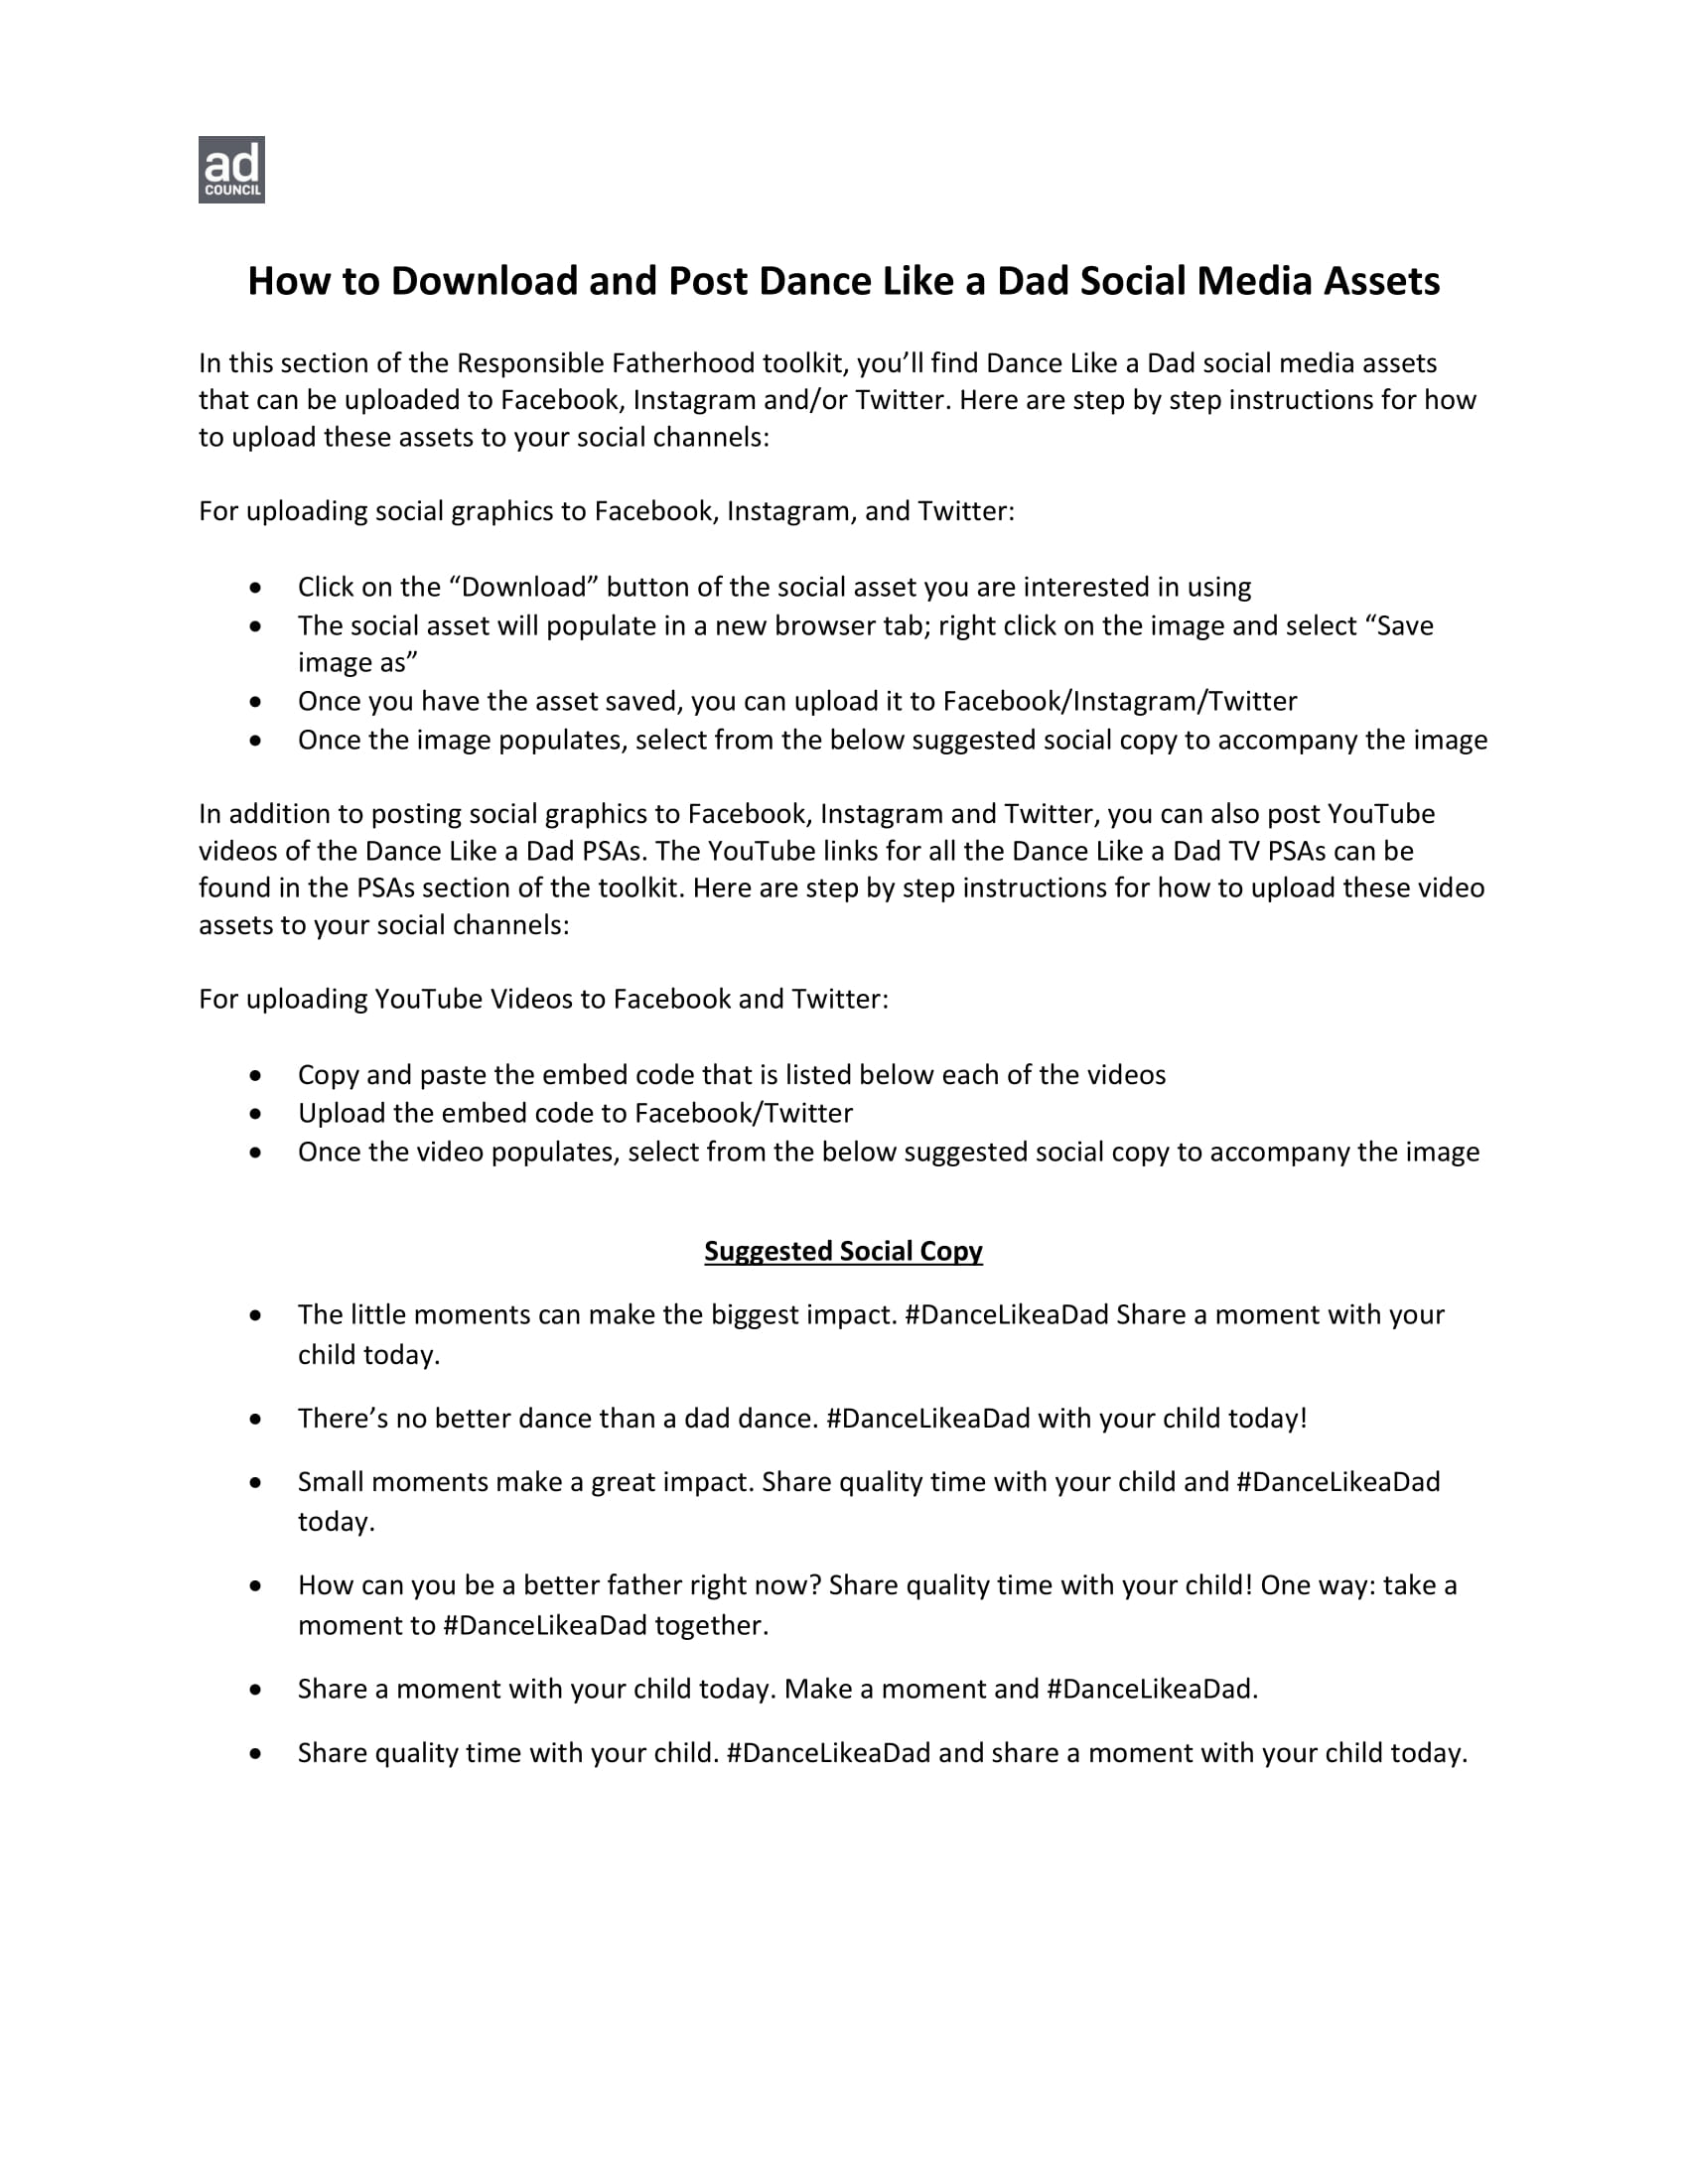 Suggested Social Copy - Toolkit-jpg